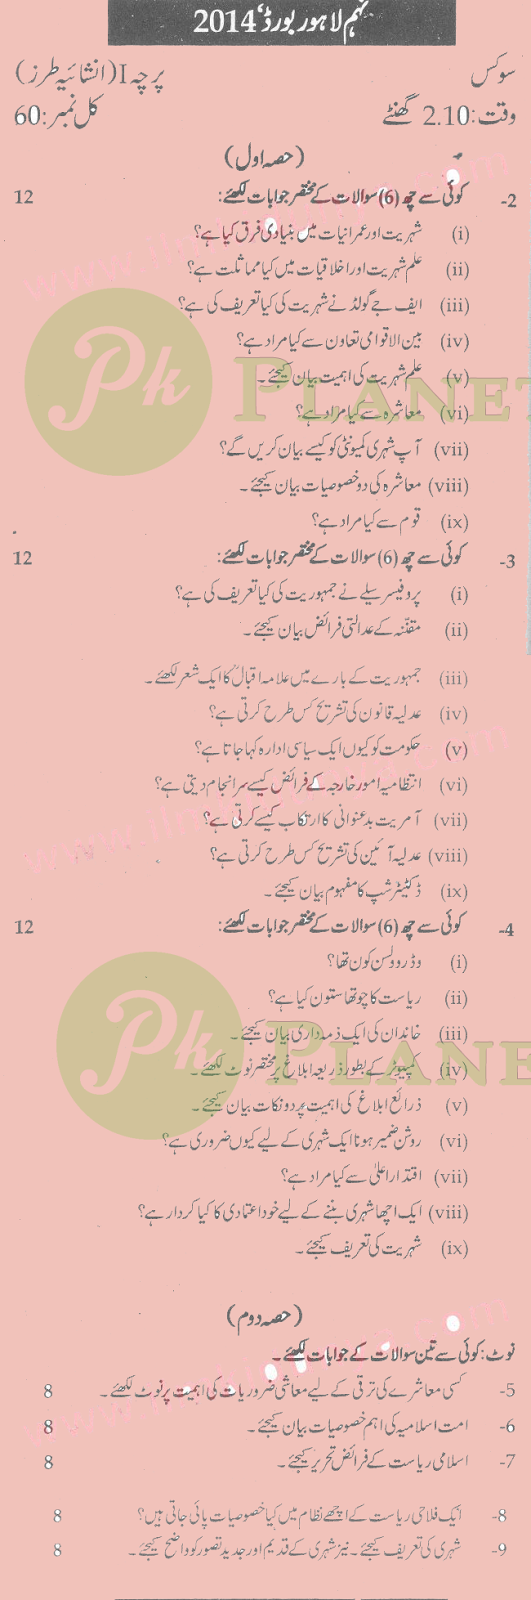 Past Papers of 9th Class Lahore Board Civics 2014